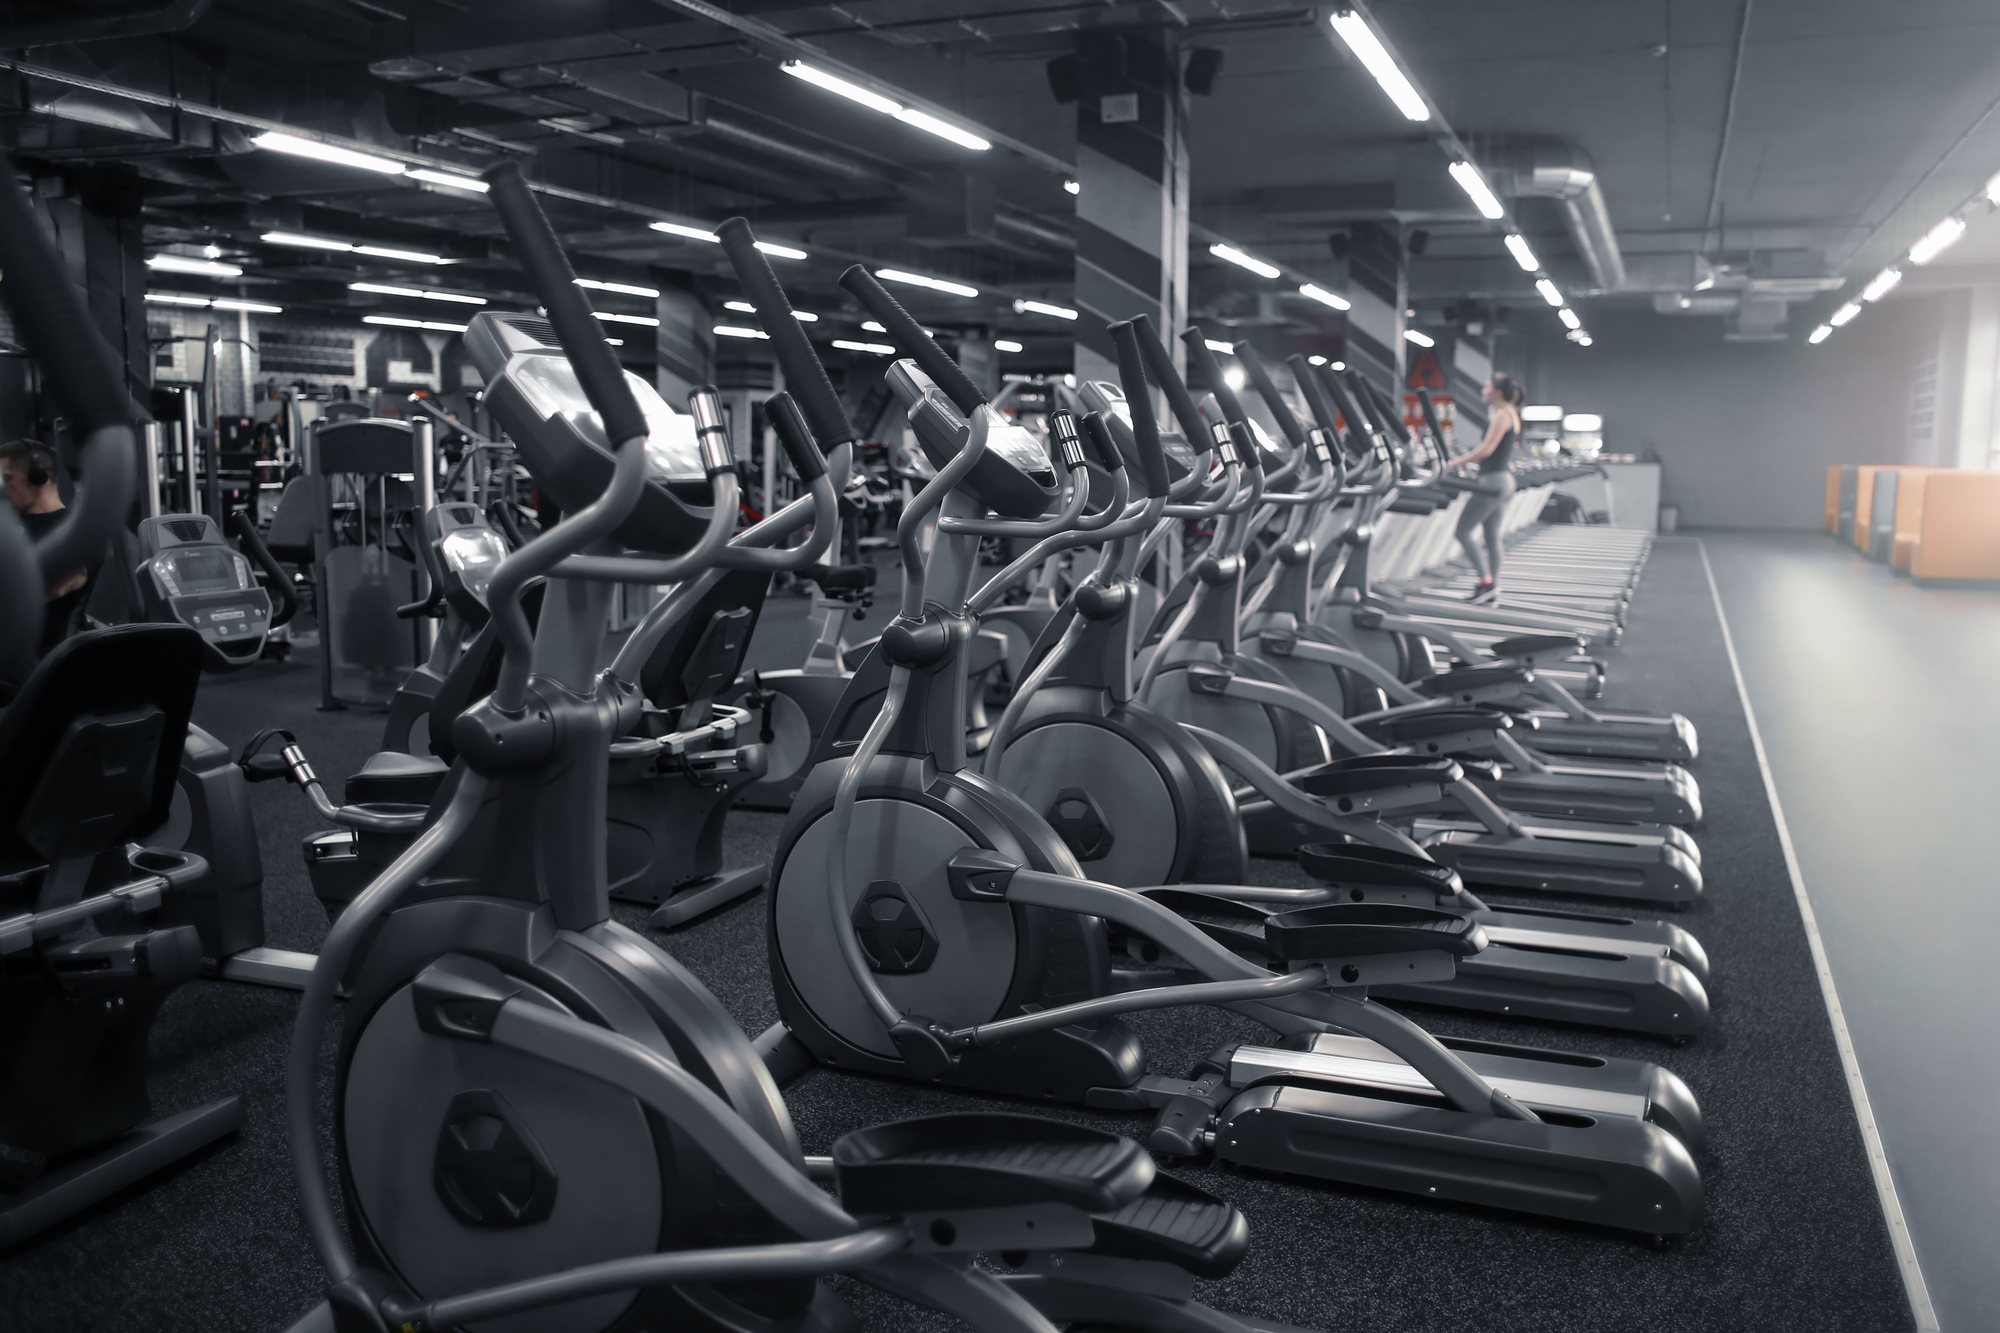 Elliptical machines and treadmills in a gym